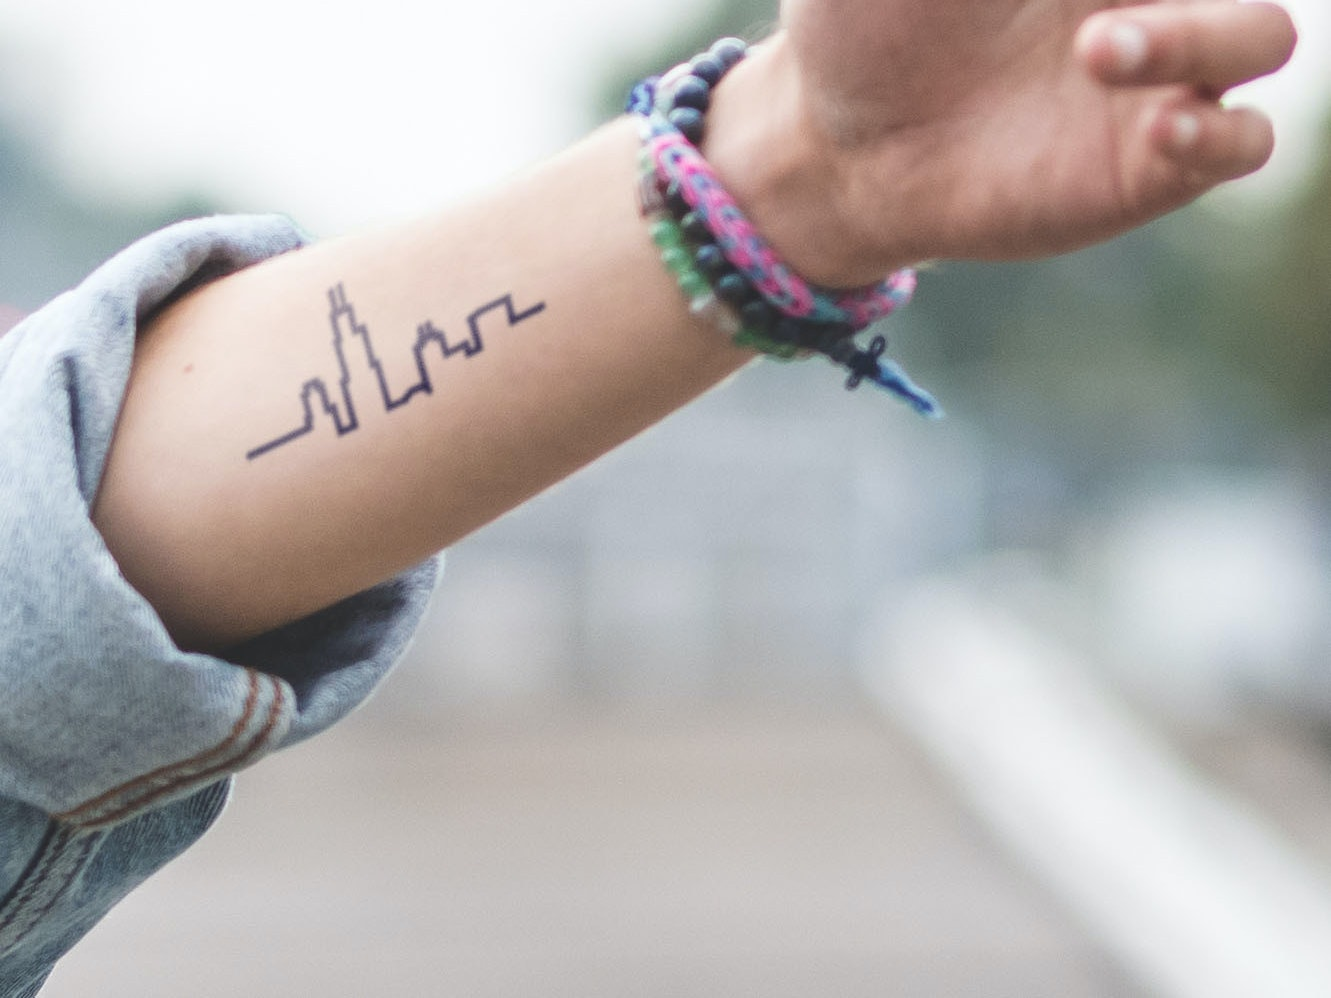 Temporary Tattoos Make a Case for Permanent Ink